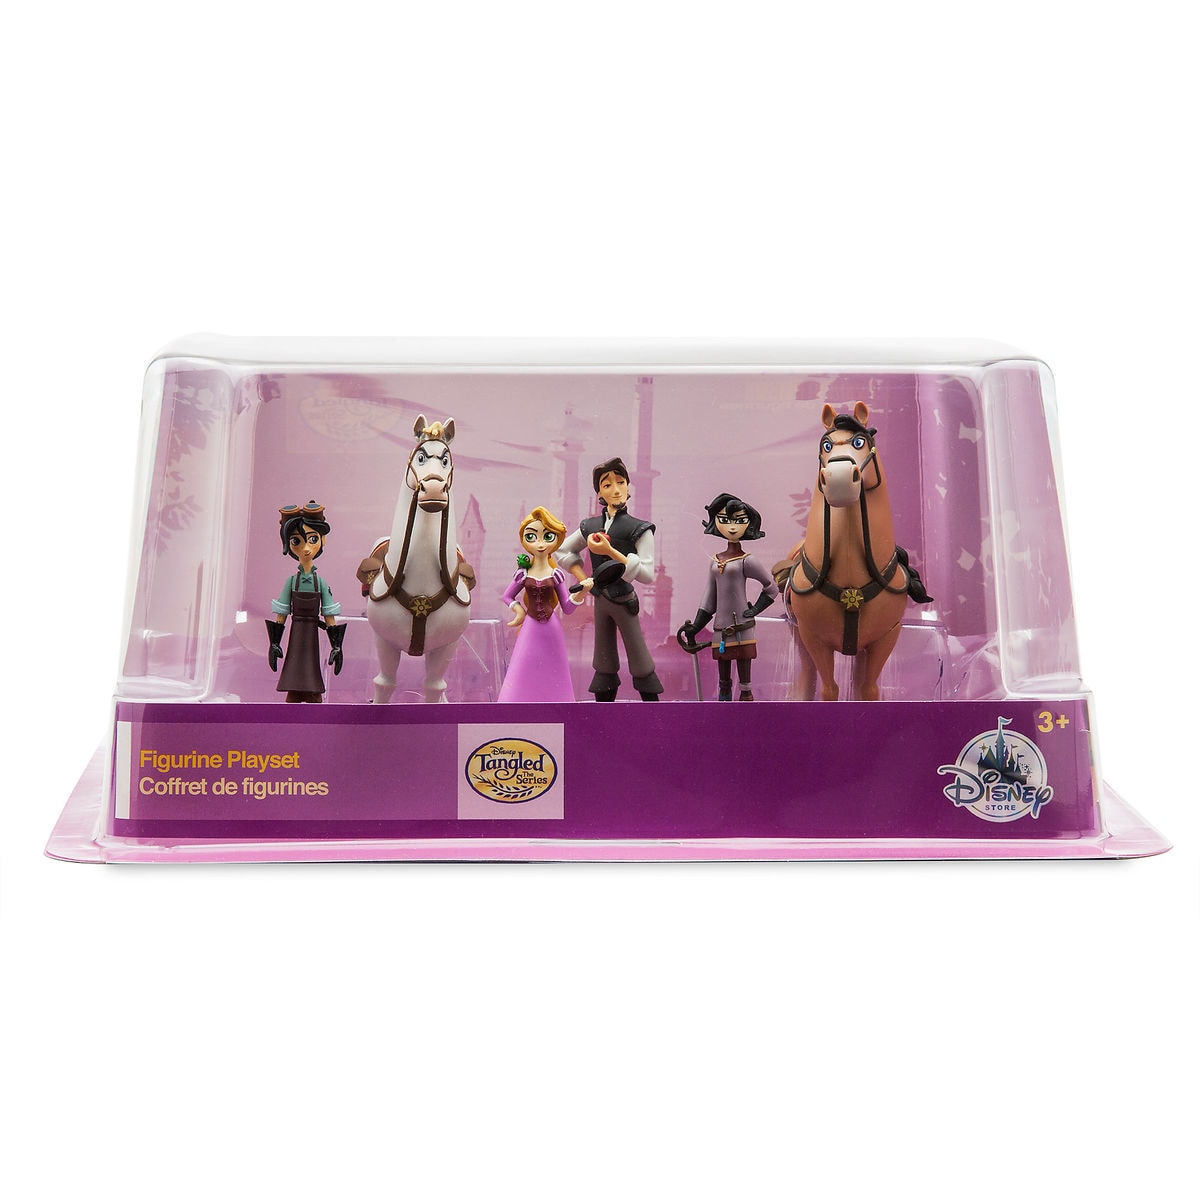 Tangled The Series Figure Play Set Shopdisney Rapunzel Product Image Of 2